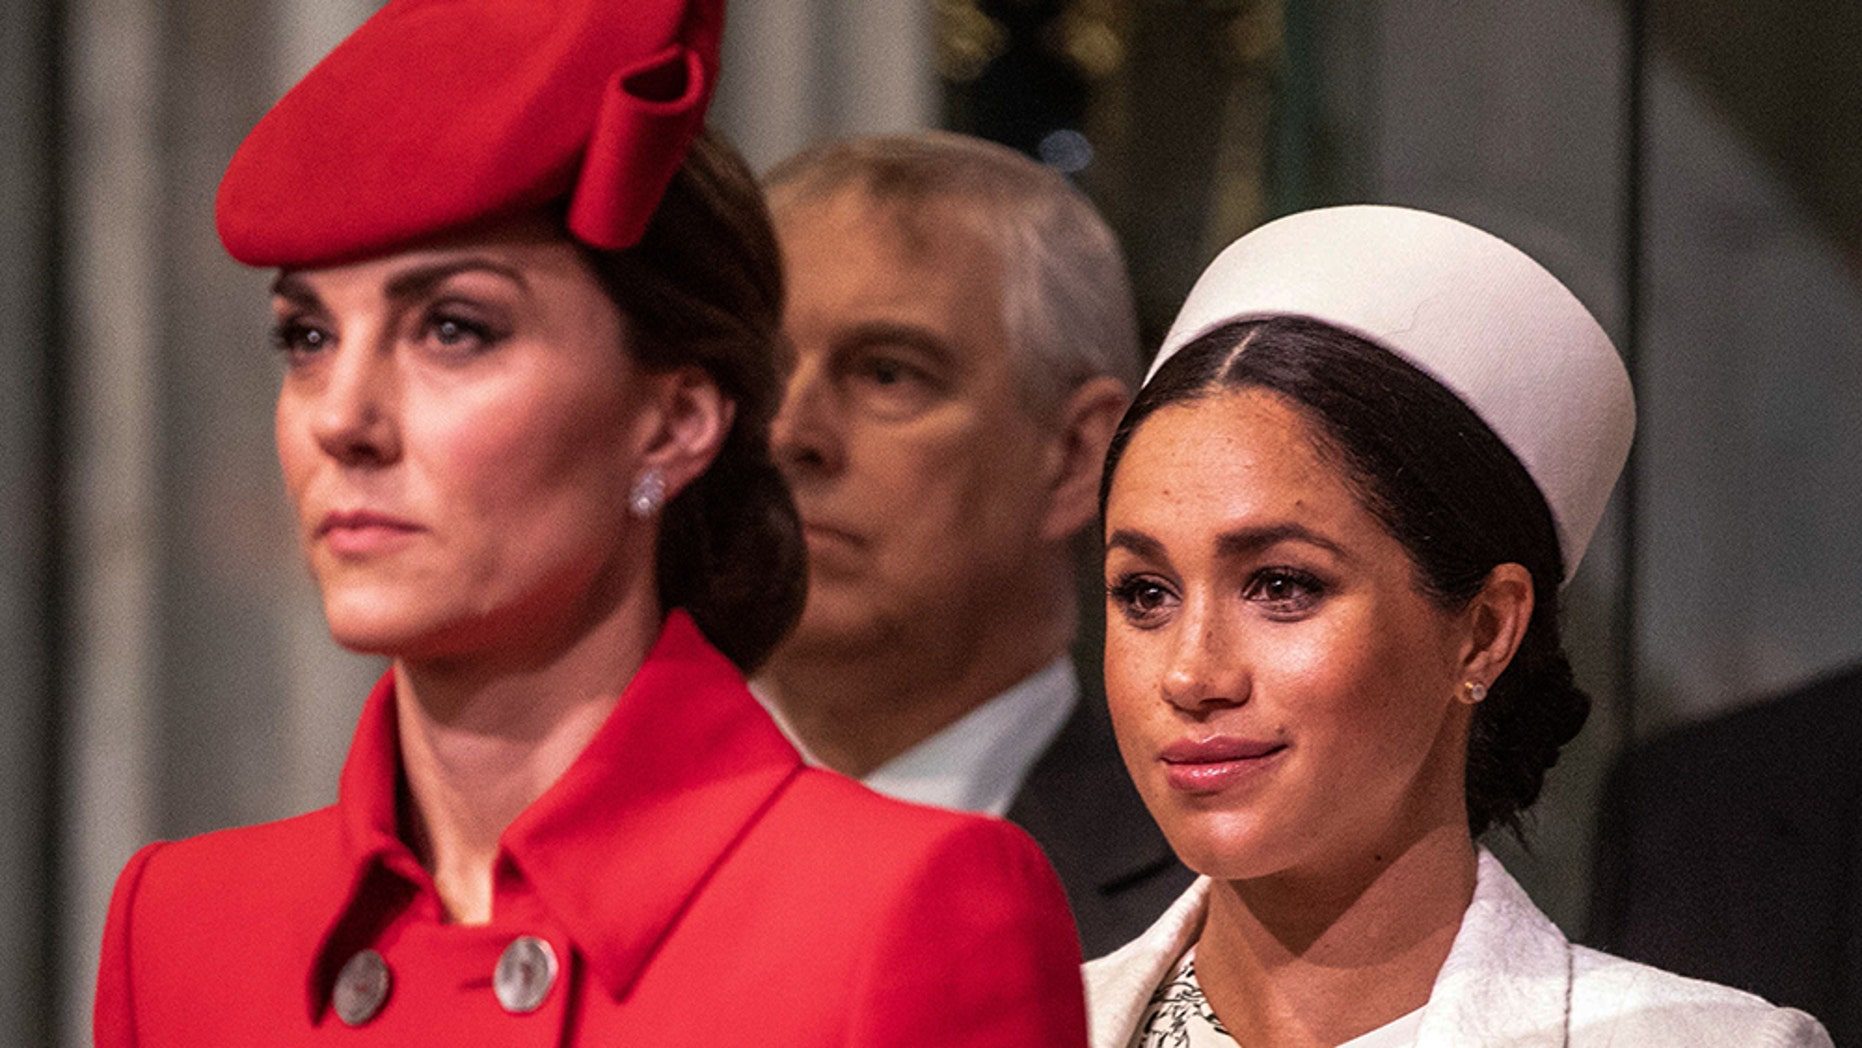 Britain's Catherine, Duchess of Cambridge and Meghan, Duchess of Sussex attend the Commonwealth Day service at Westminster Abbey in London on March 11, 2019. — Getty